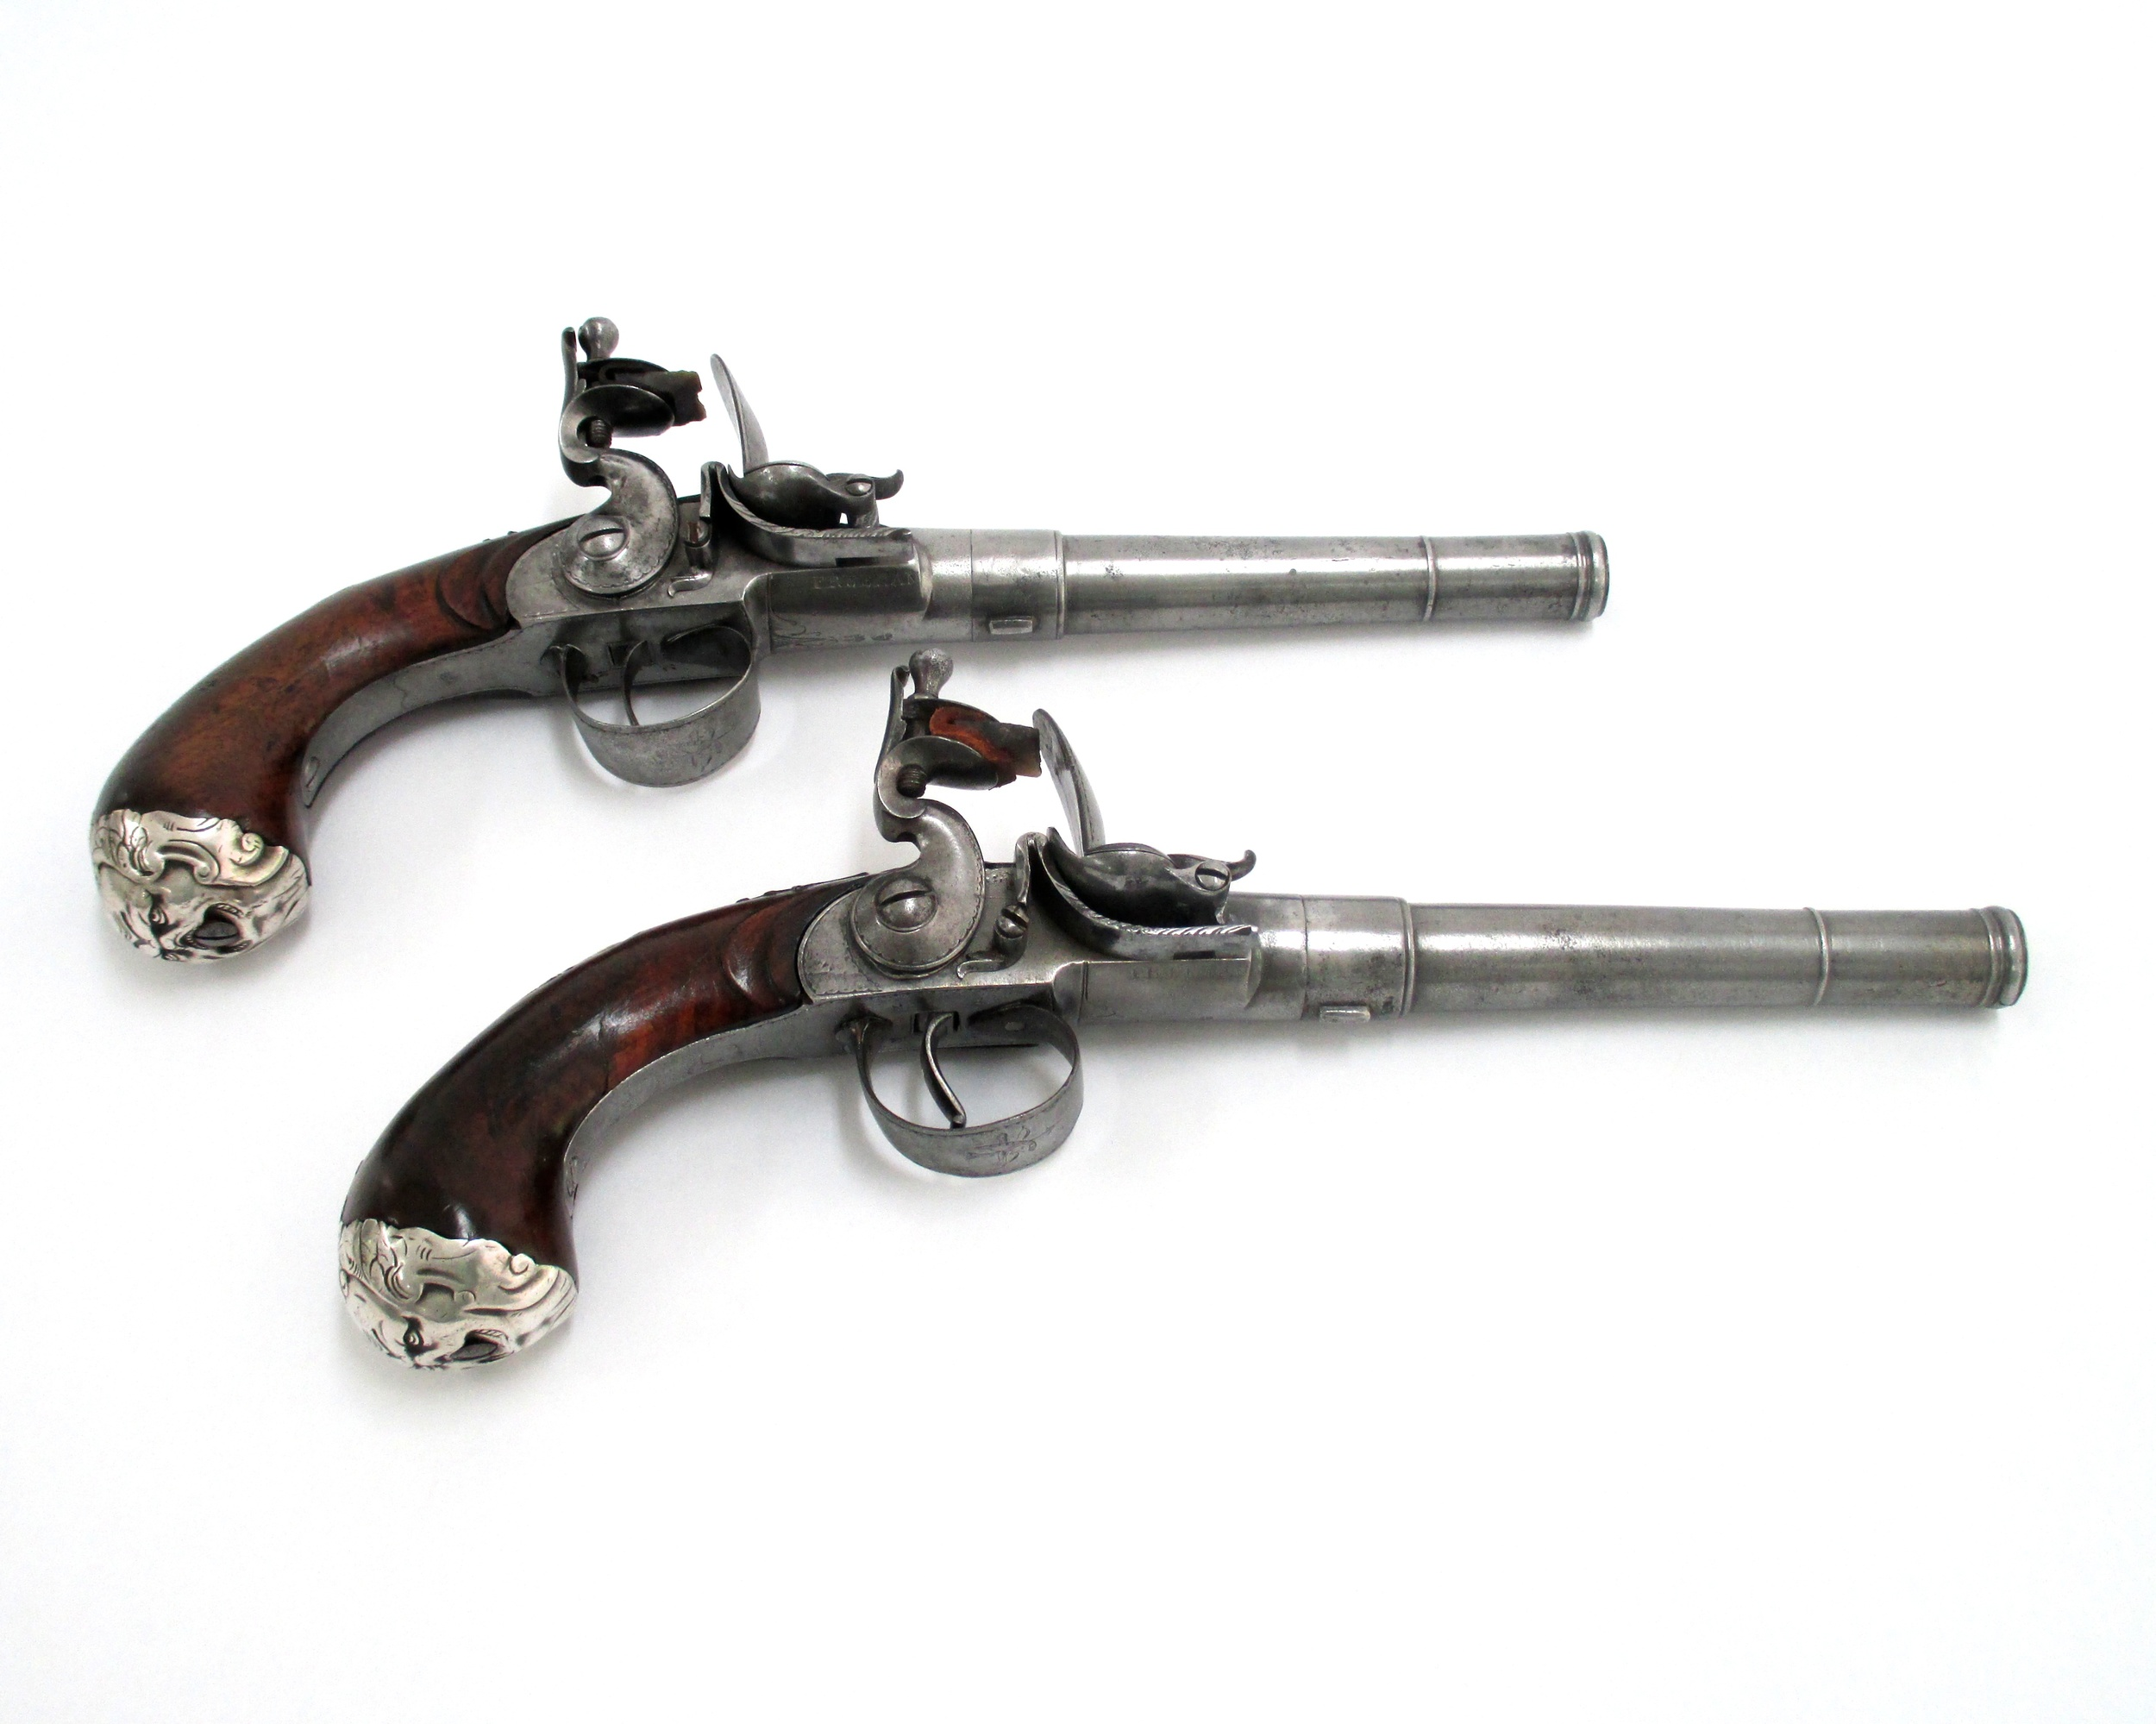 pair-20bore-english-queen-ann-flintlock-pistols-freeman-gary-friedland-arms-armor8.jpg